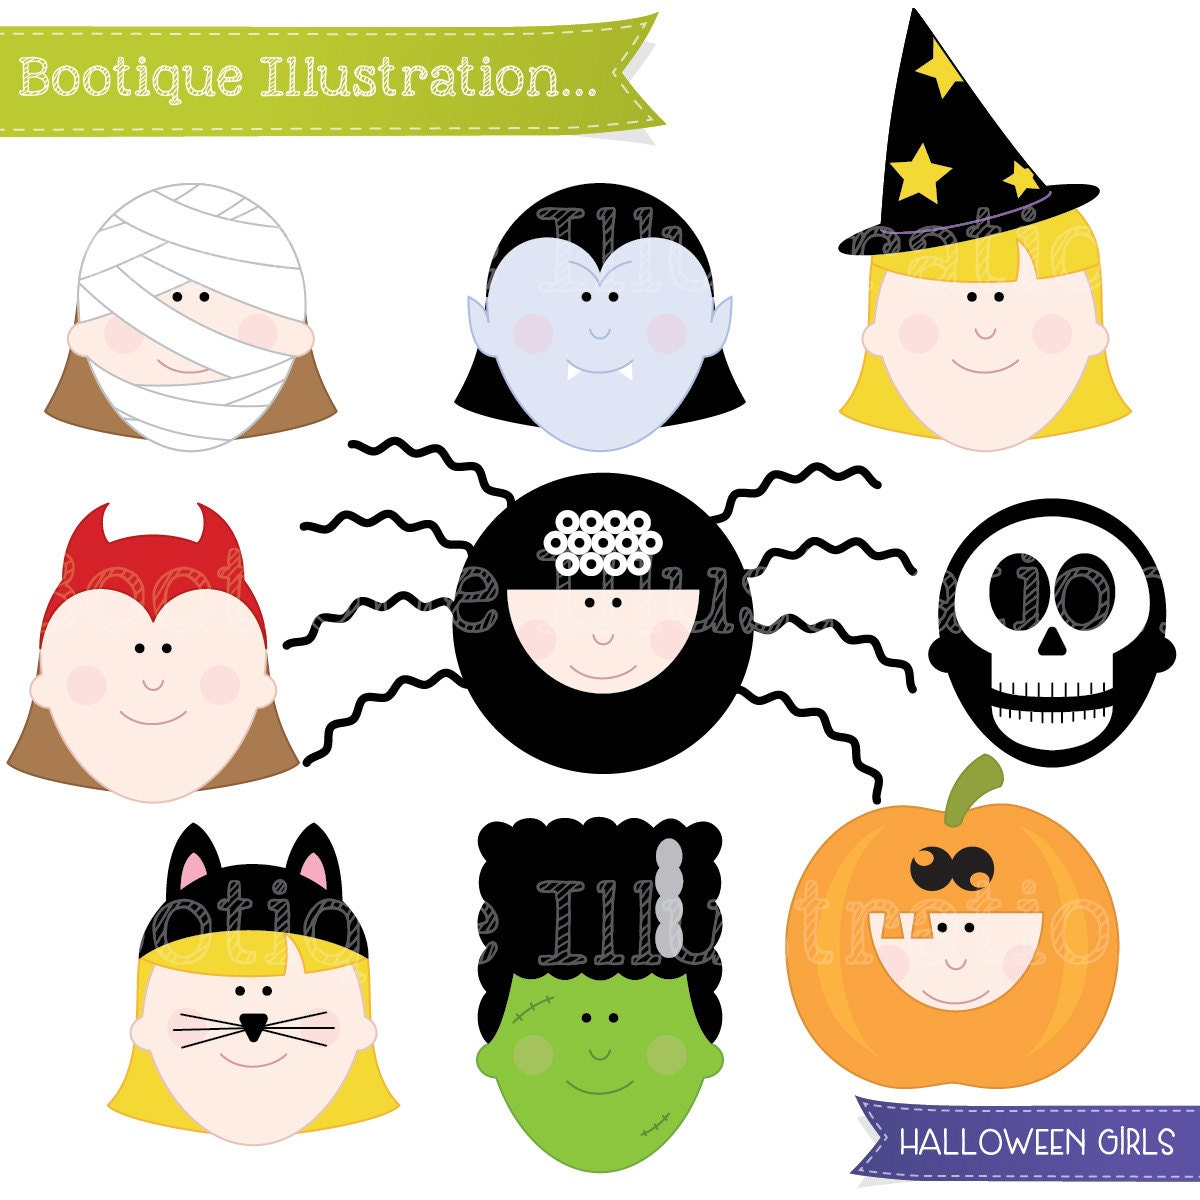 Three children trick-or-treating with a little alien - Buy this stock  vector and explore similar vectors at Adobe Stock   Adobe Stock